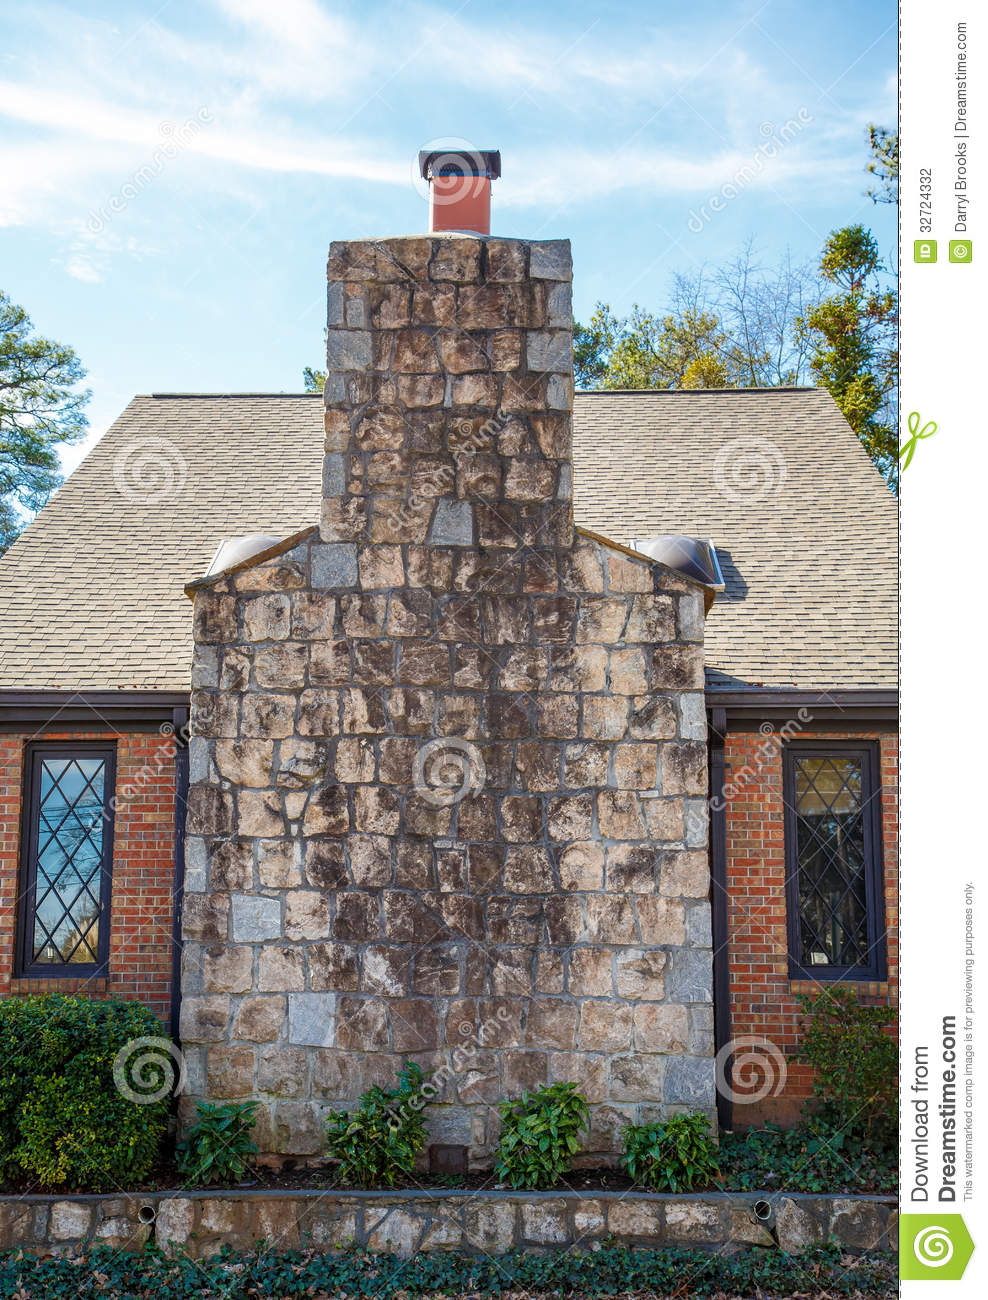 large-stone-chimney-small-brick-cottage-dirty-32724332 Home Plans With Detached on home plans with 6 bedrooms, home plans with 4 bedrooms, home plans with garage, home plans with five bedrooms,